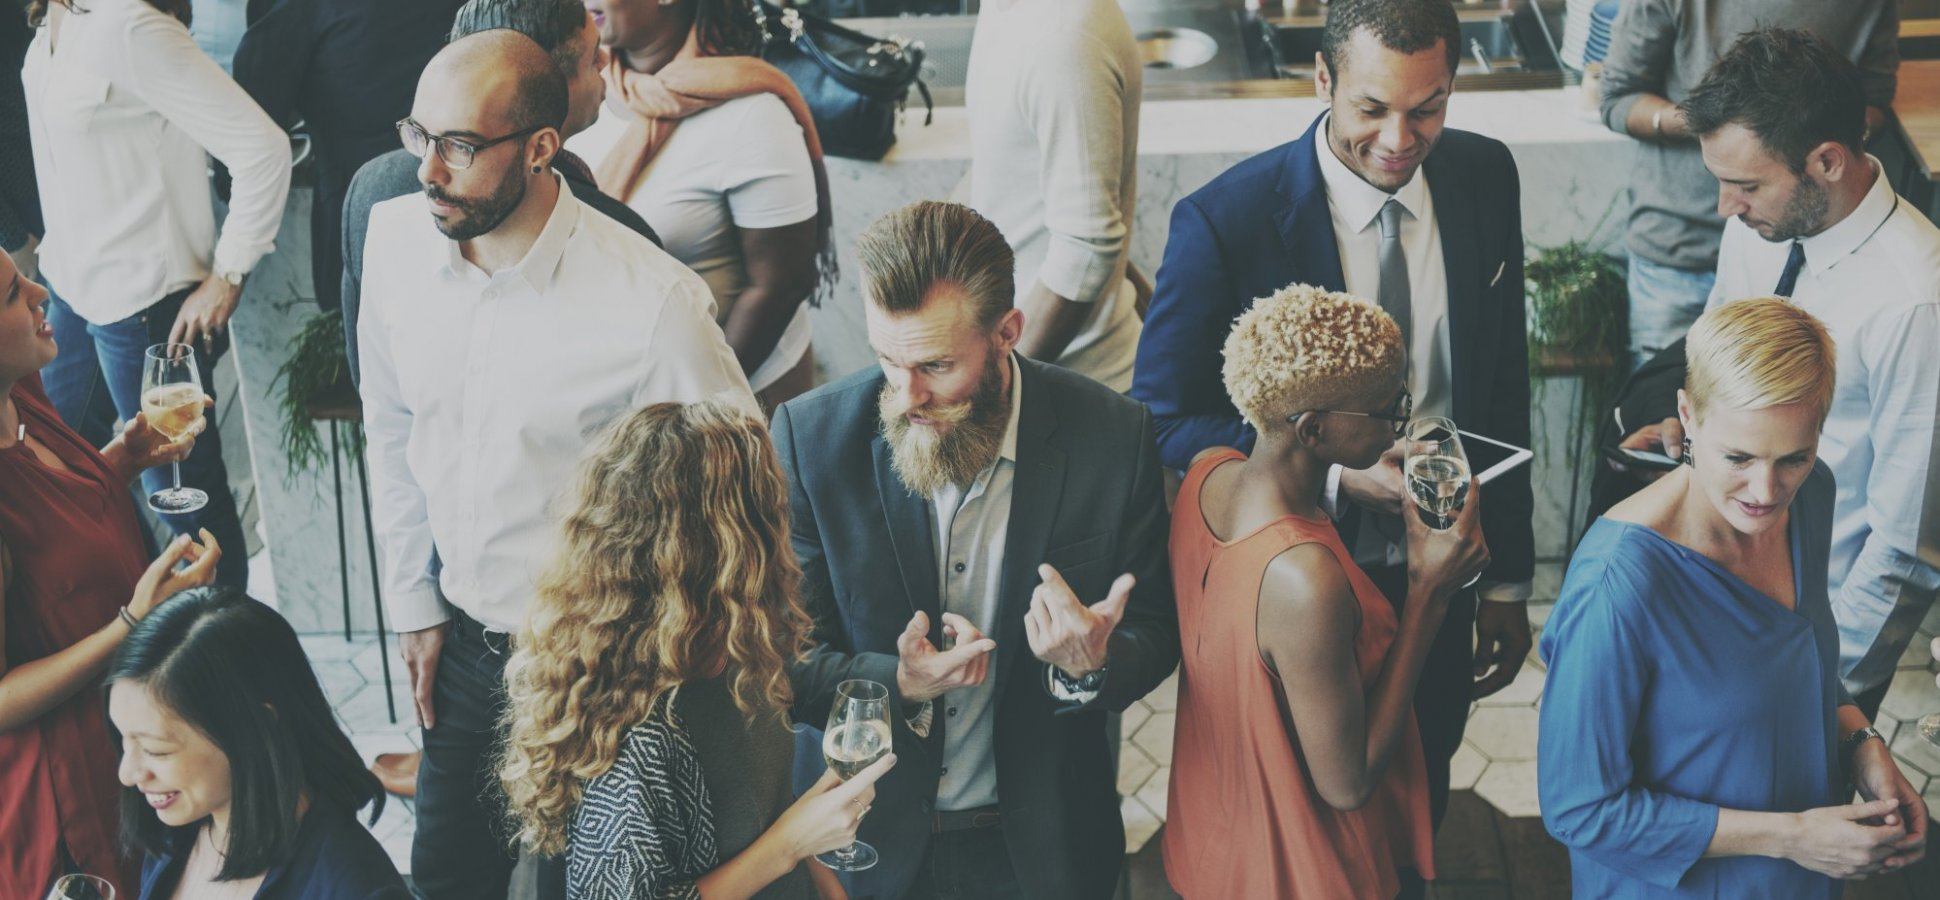 Hate Networking Groups? Here Are 5 Ways to Make Them Work for You